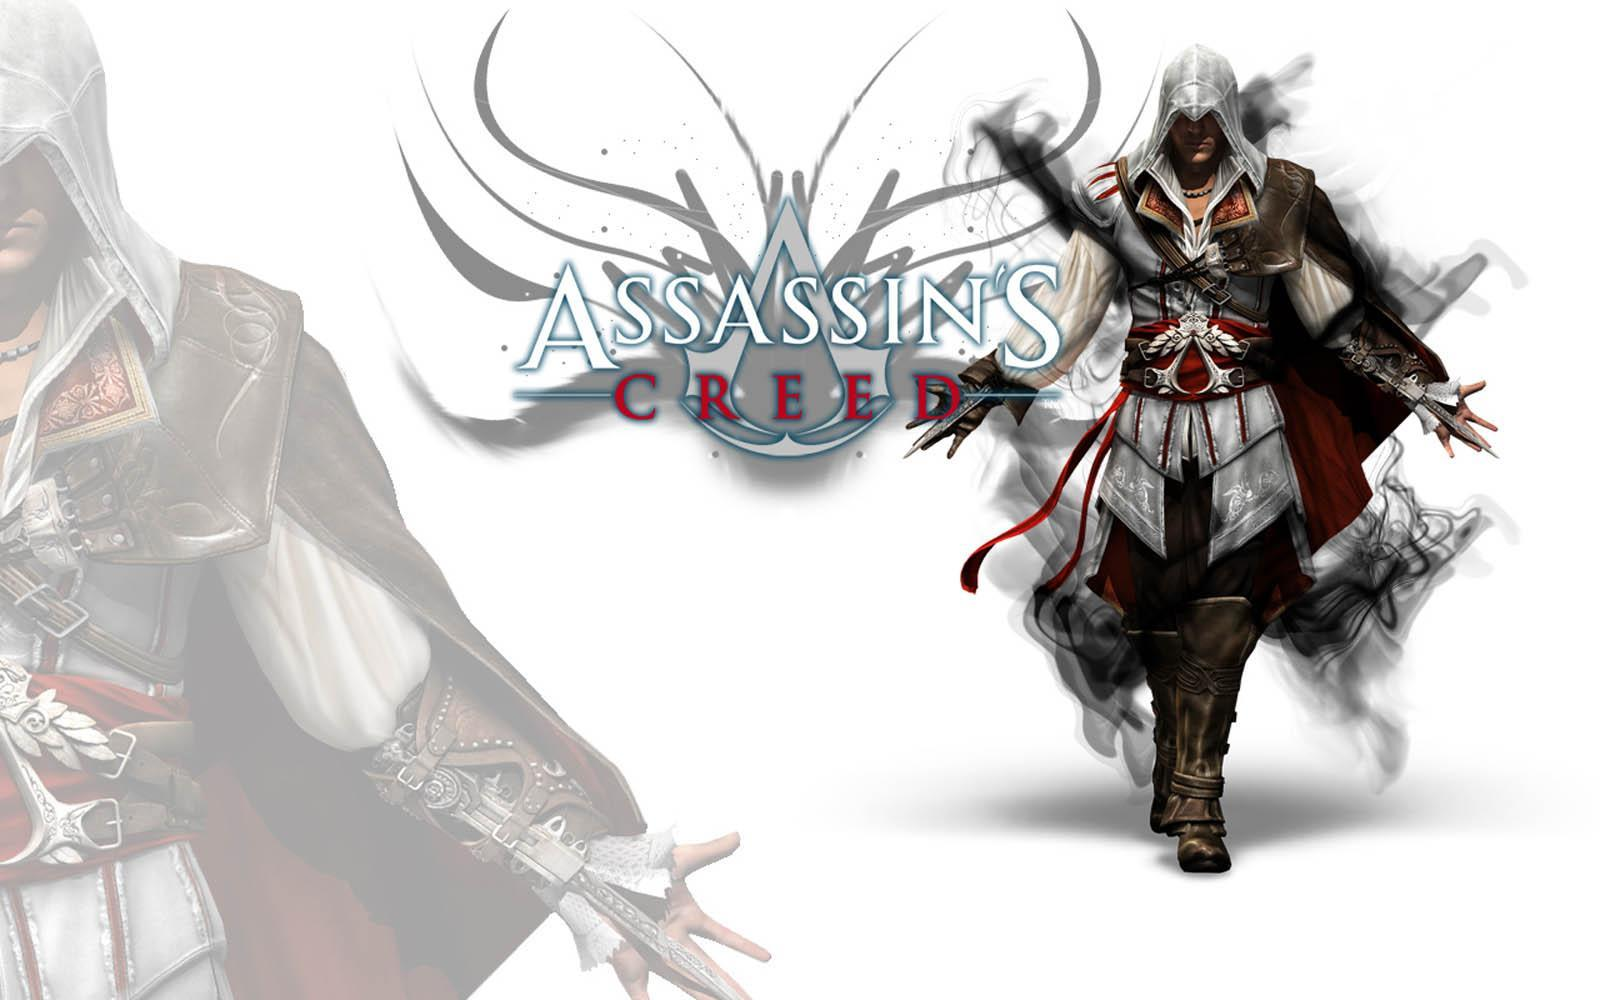 Download Assassin&Creed 3 PC Wallpapers HD